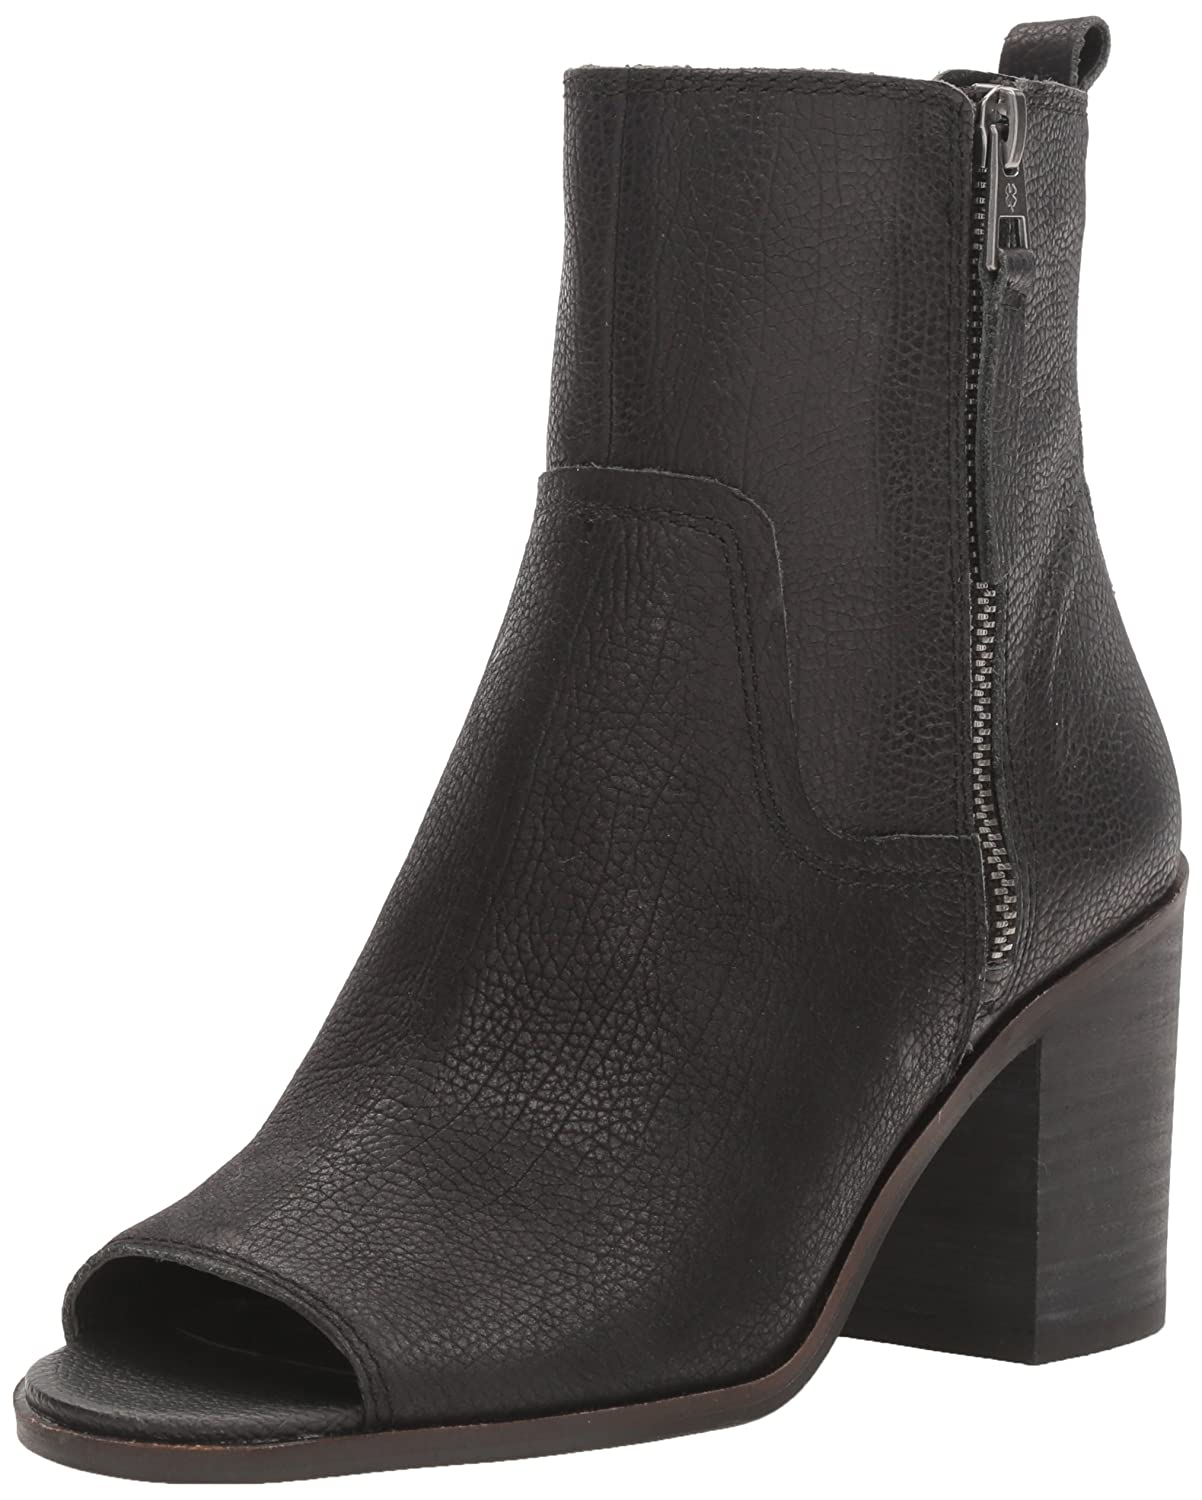 Lucky Brand Women's Kamren Ankle US|Black Bootie B01M04E4NA 7.5 B(M) US|Black Ankle a29570